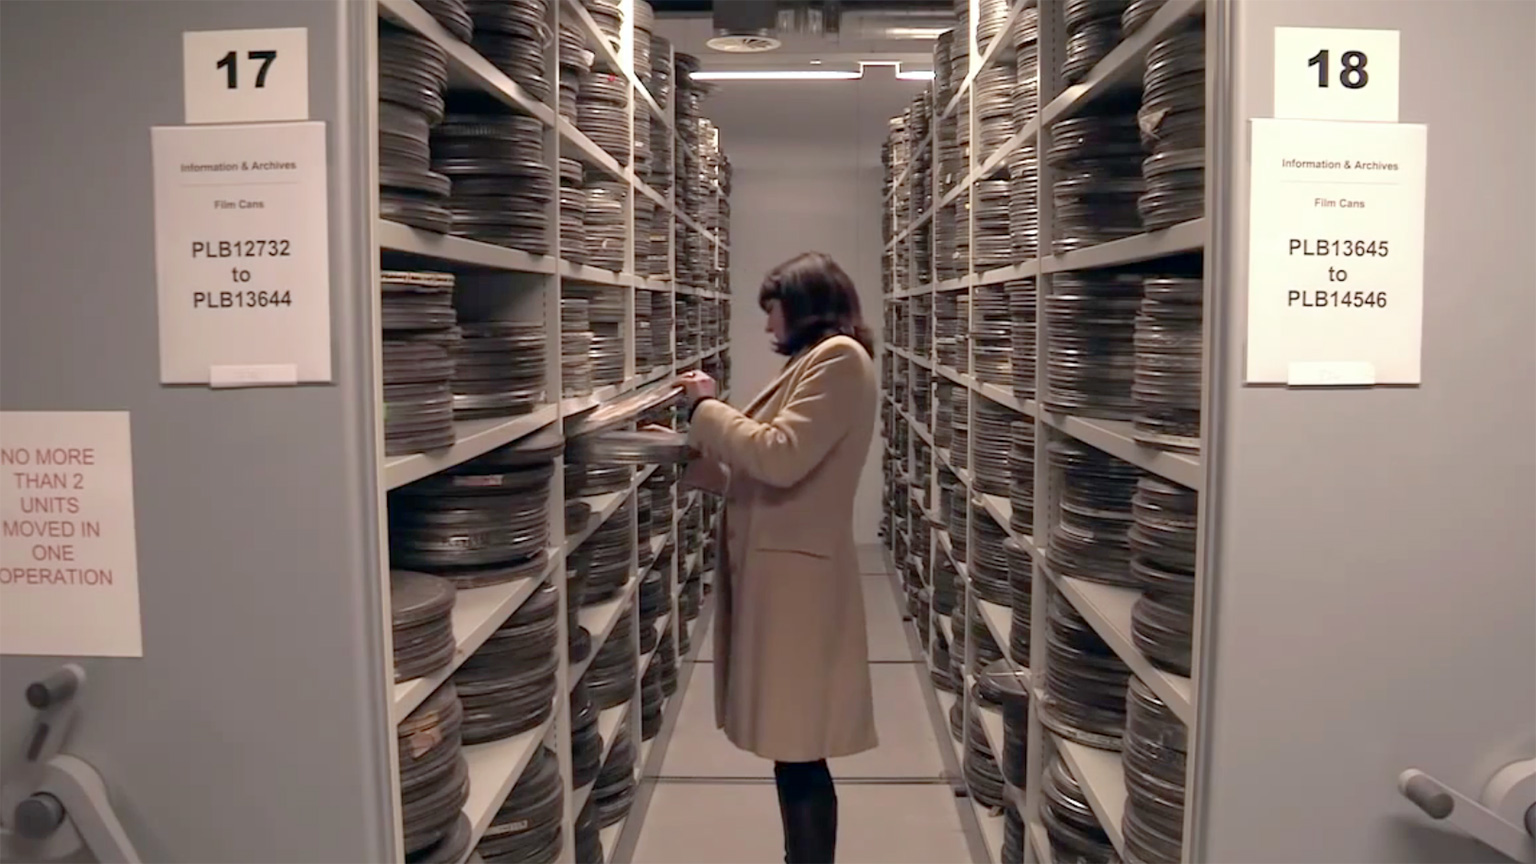 Woman looking through the shelves of television archives